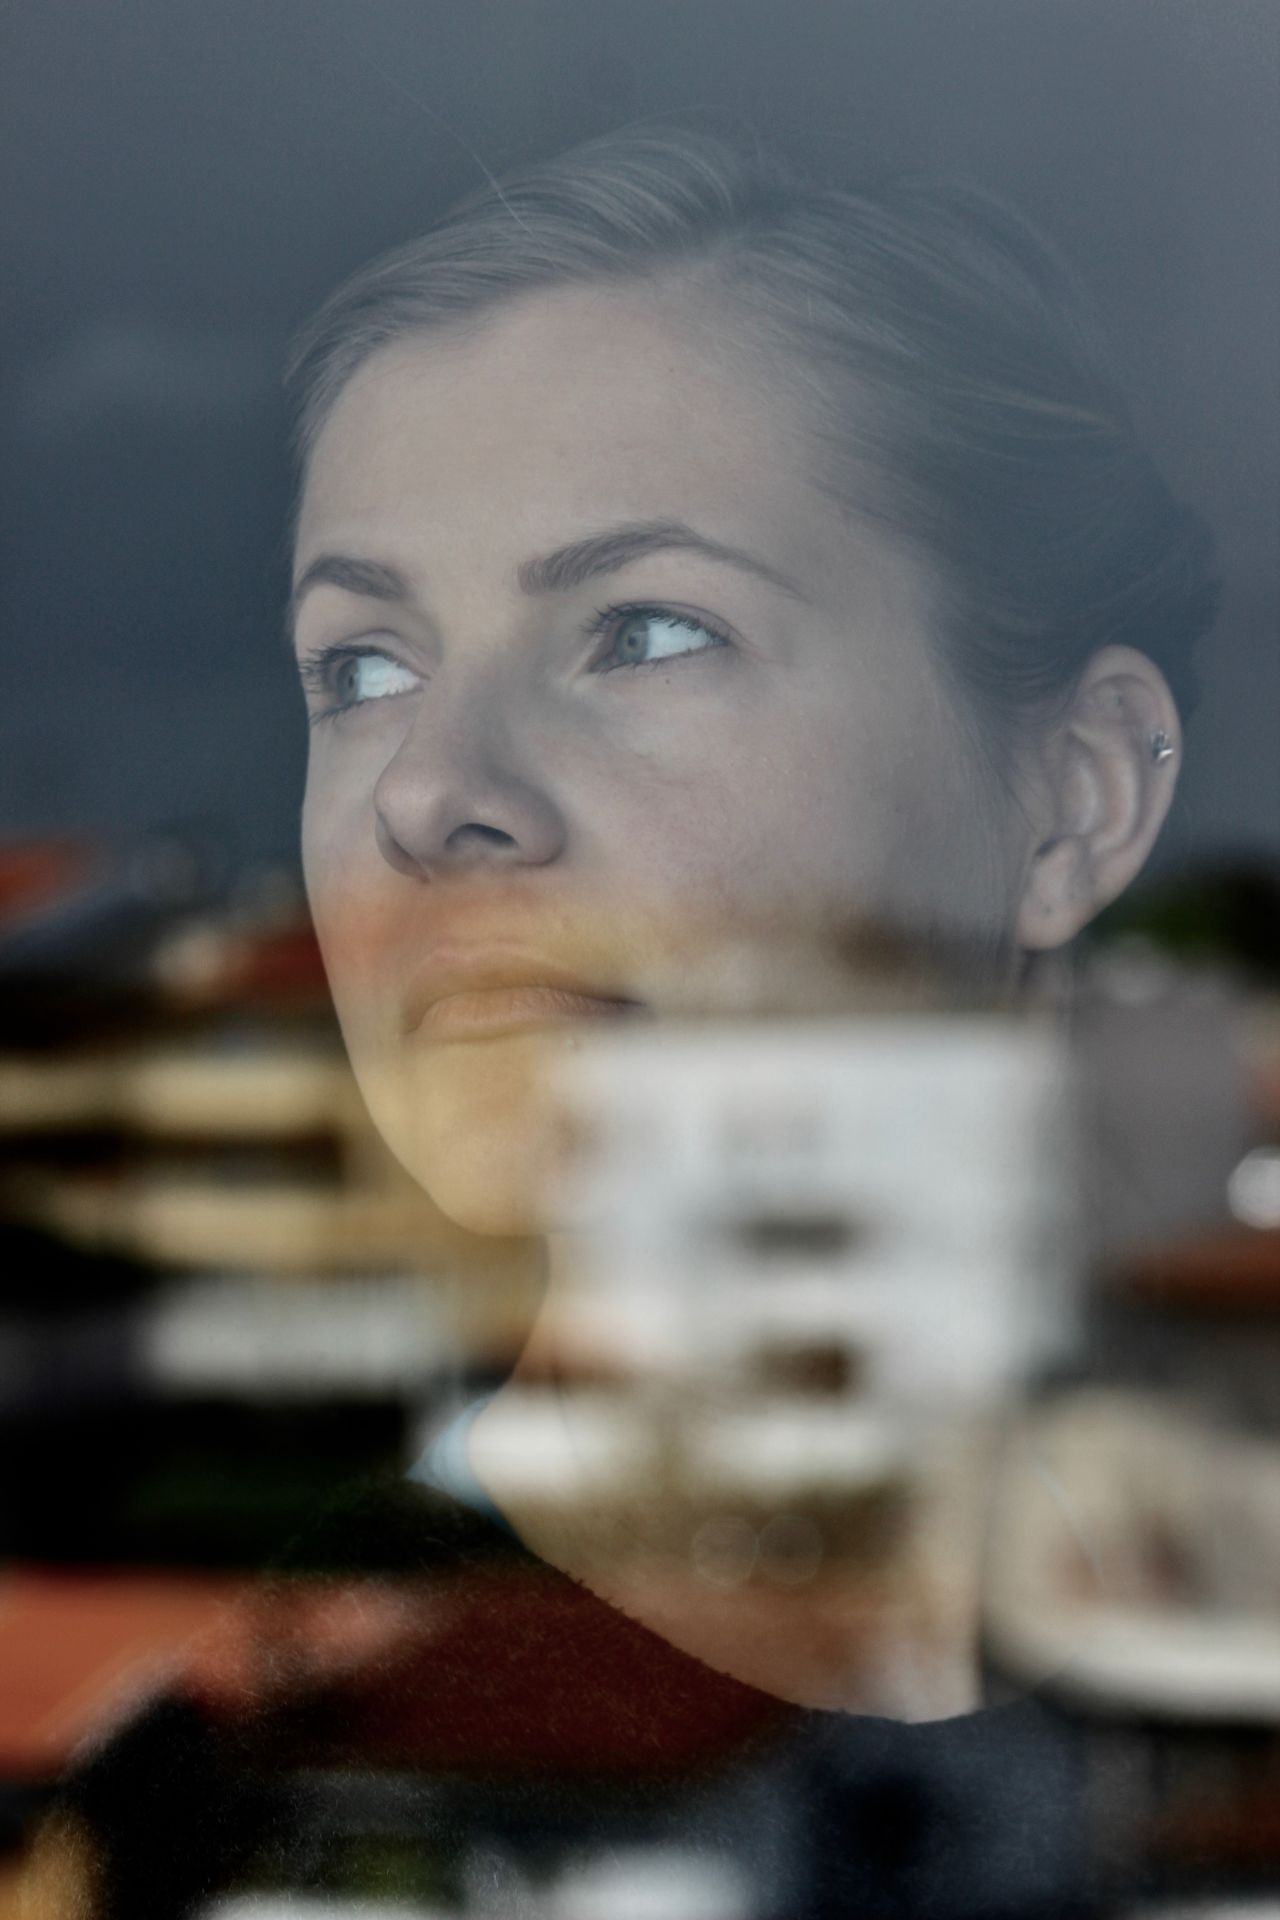 Window Reflections Canon Capture The Moment Close-up Colorful ColourOFlife Creative Light And Shadow Girl Hello World Light People People Watching Photography Picoftheday Portrait Portrait Of A Woman Reflection Selective Focus Sigma Simplicity The Week On EyeEem VSCO Vscocam Window Winter Young Women